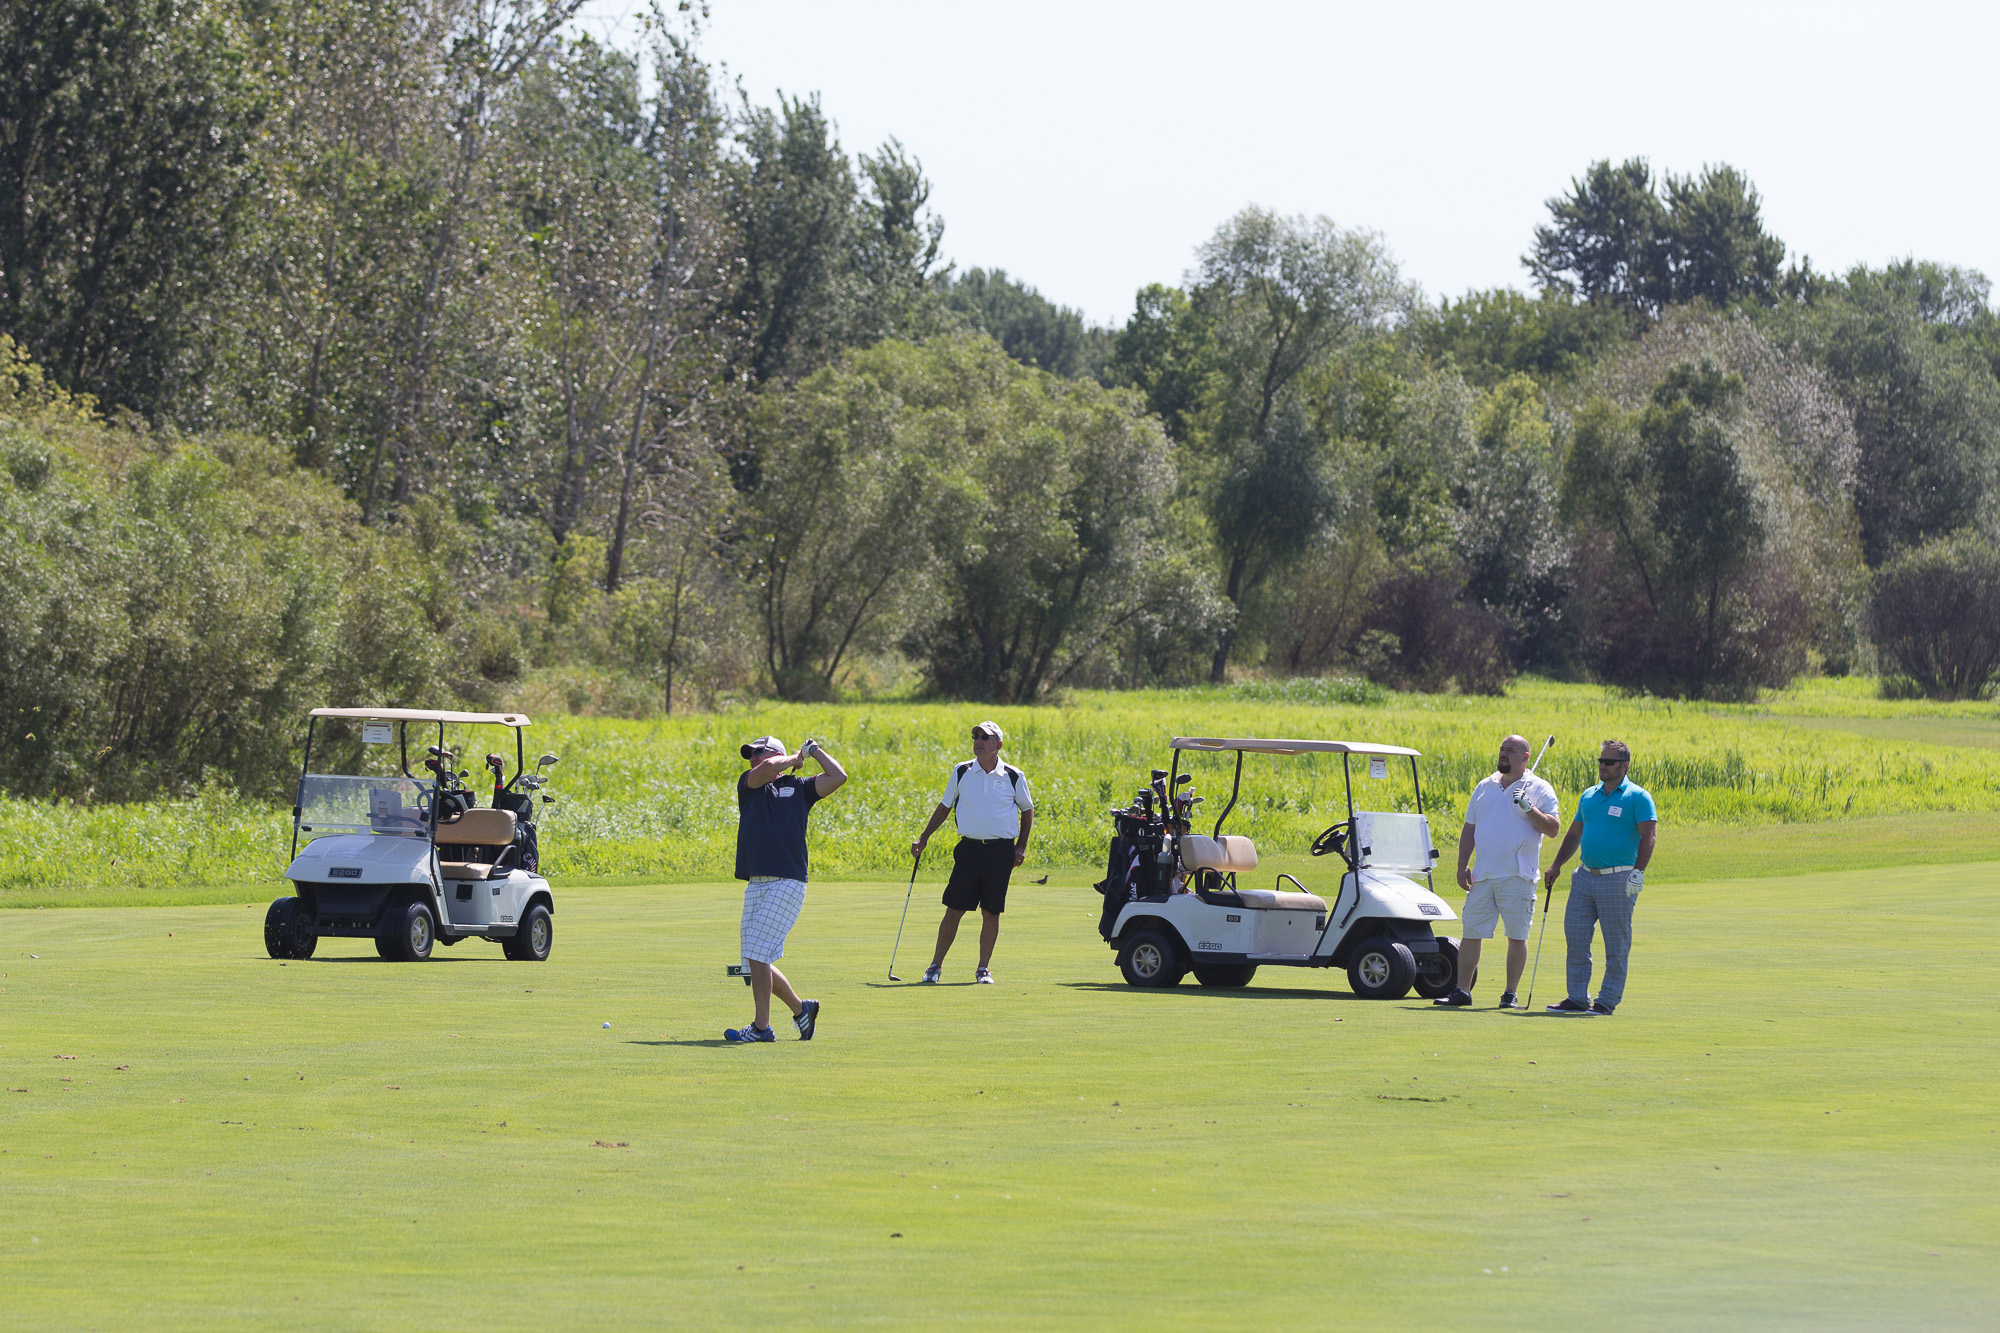 shrine of christs passion golf outing 2015 39